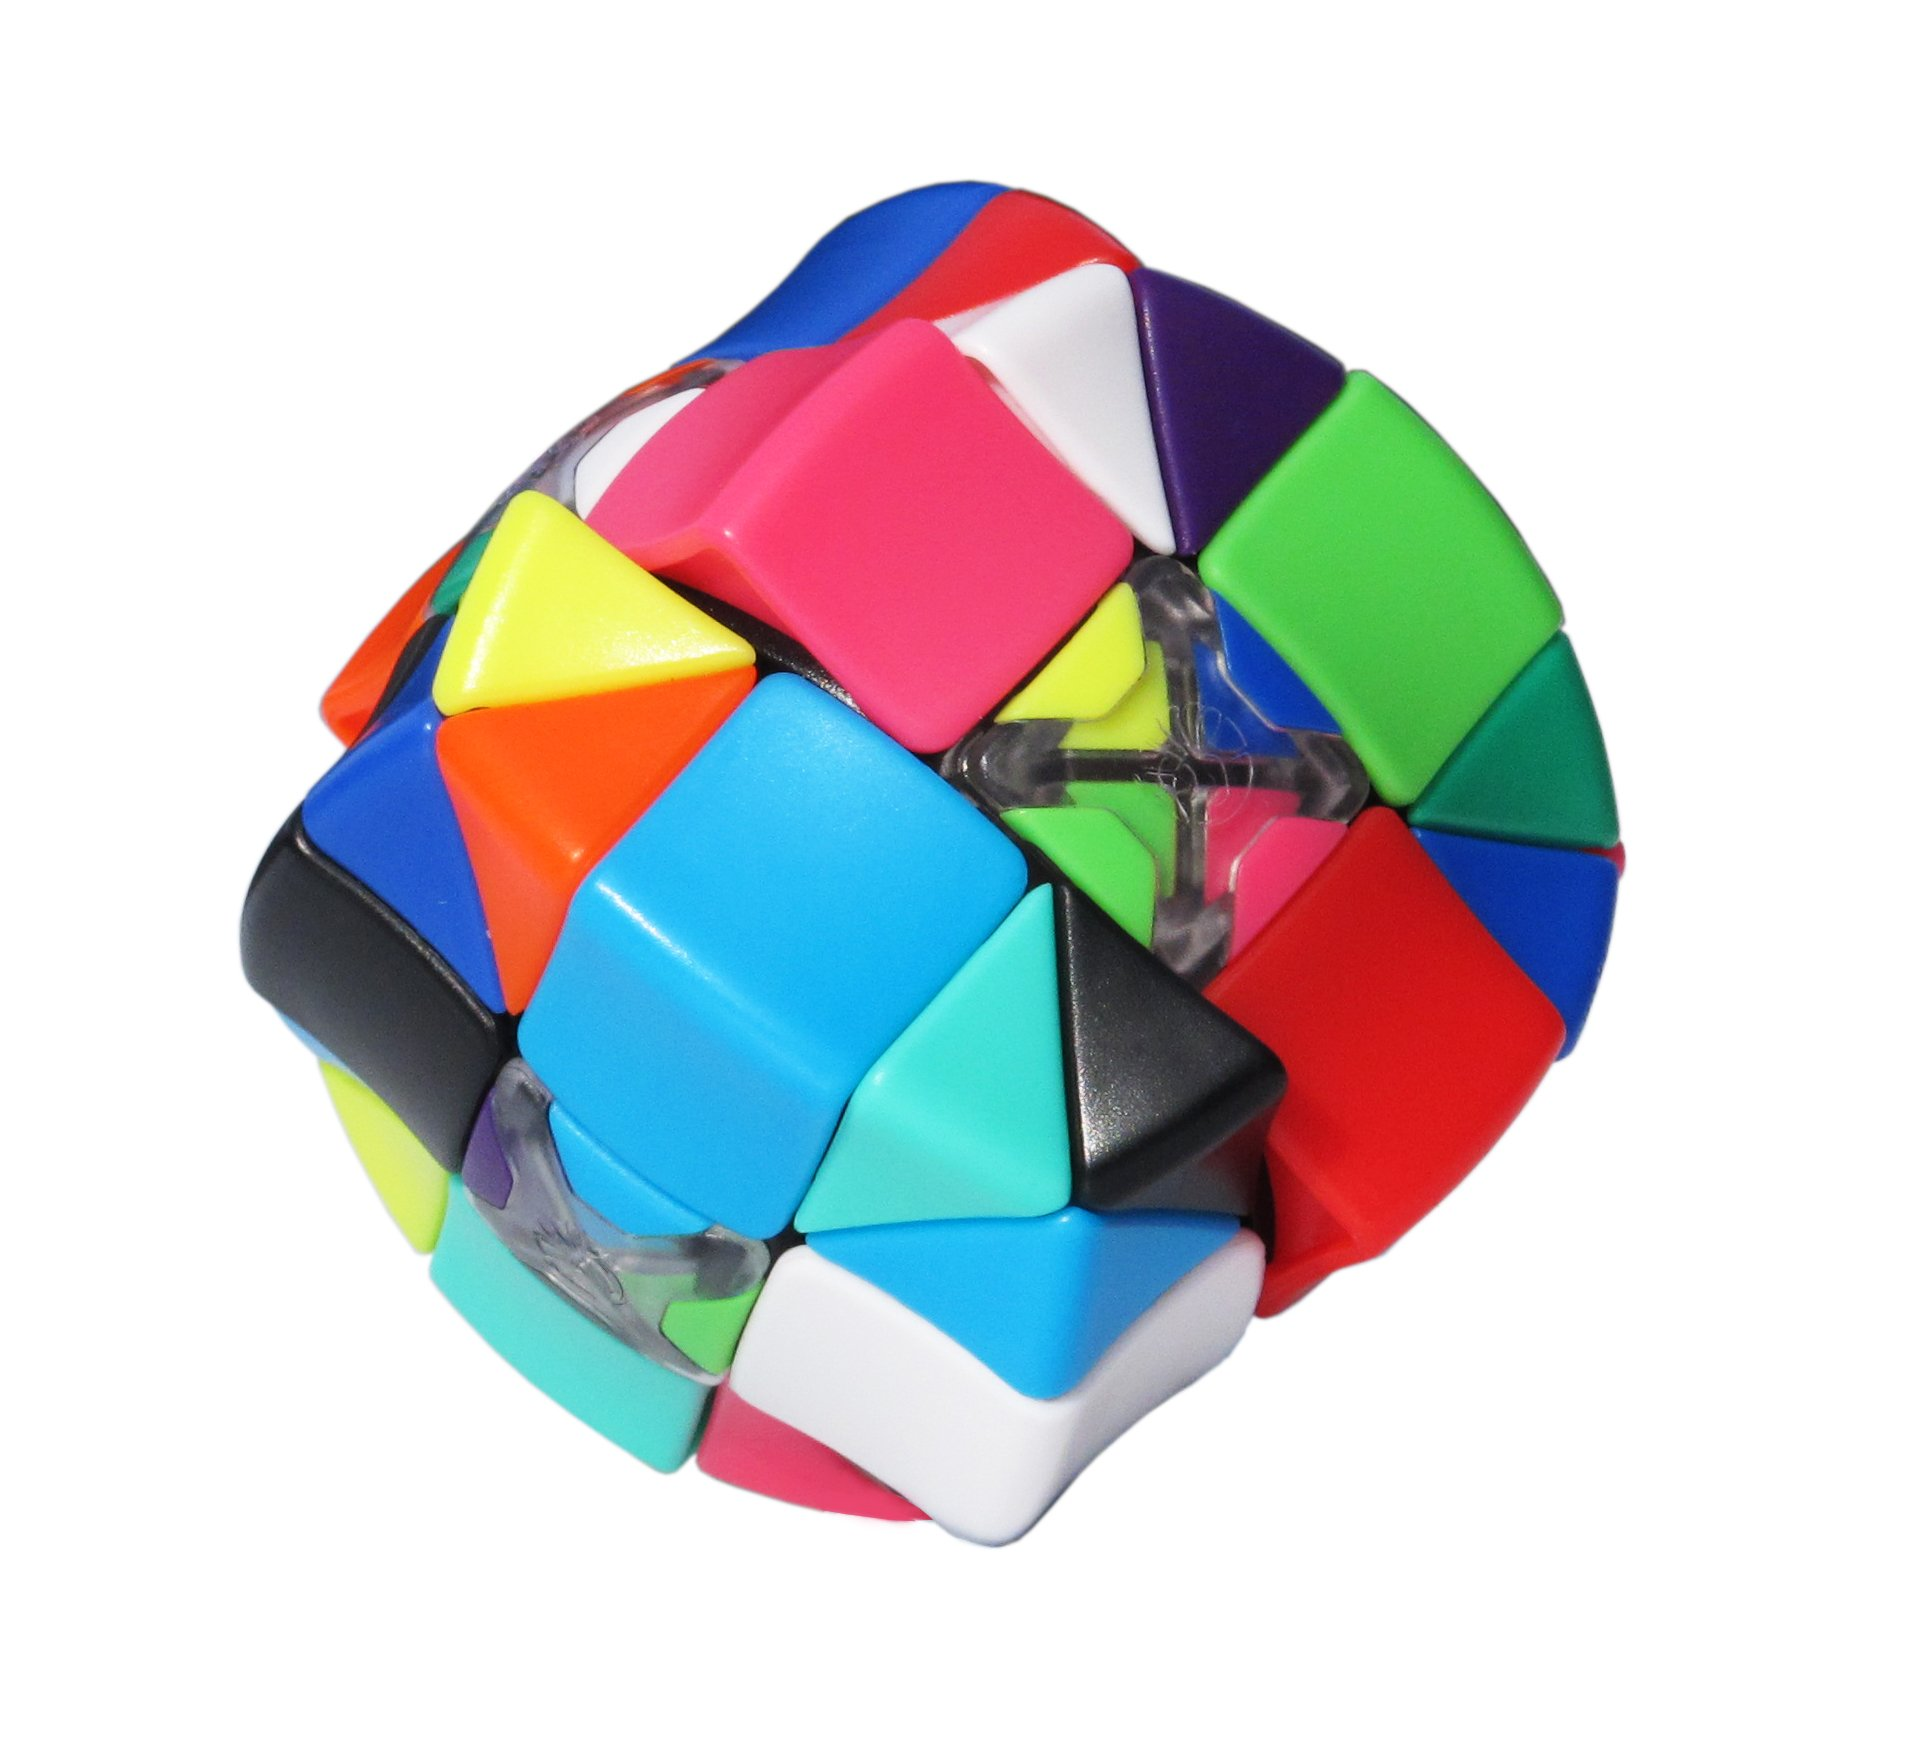 Armadillo Cube: Smooth turning - Stickerless - 12 Candy Colors - Resettable - Awesome Brain Teaser - Advanced 3x3x3 Puzzle - Brand New Challenges - 100% Money Back Guarantee! by Armadillo Cube (Image #6)